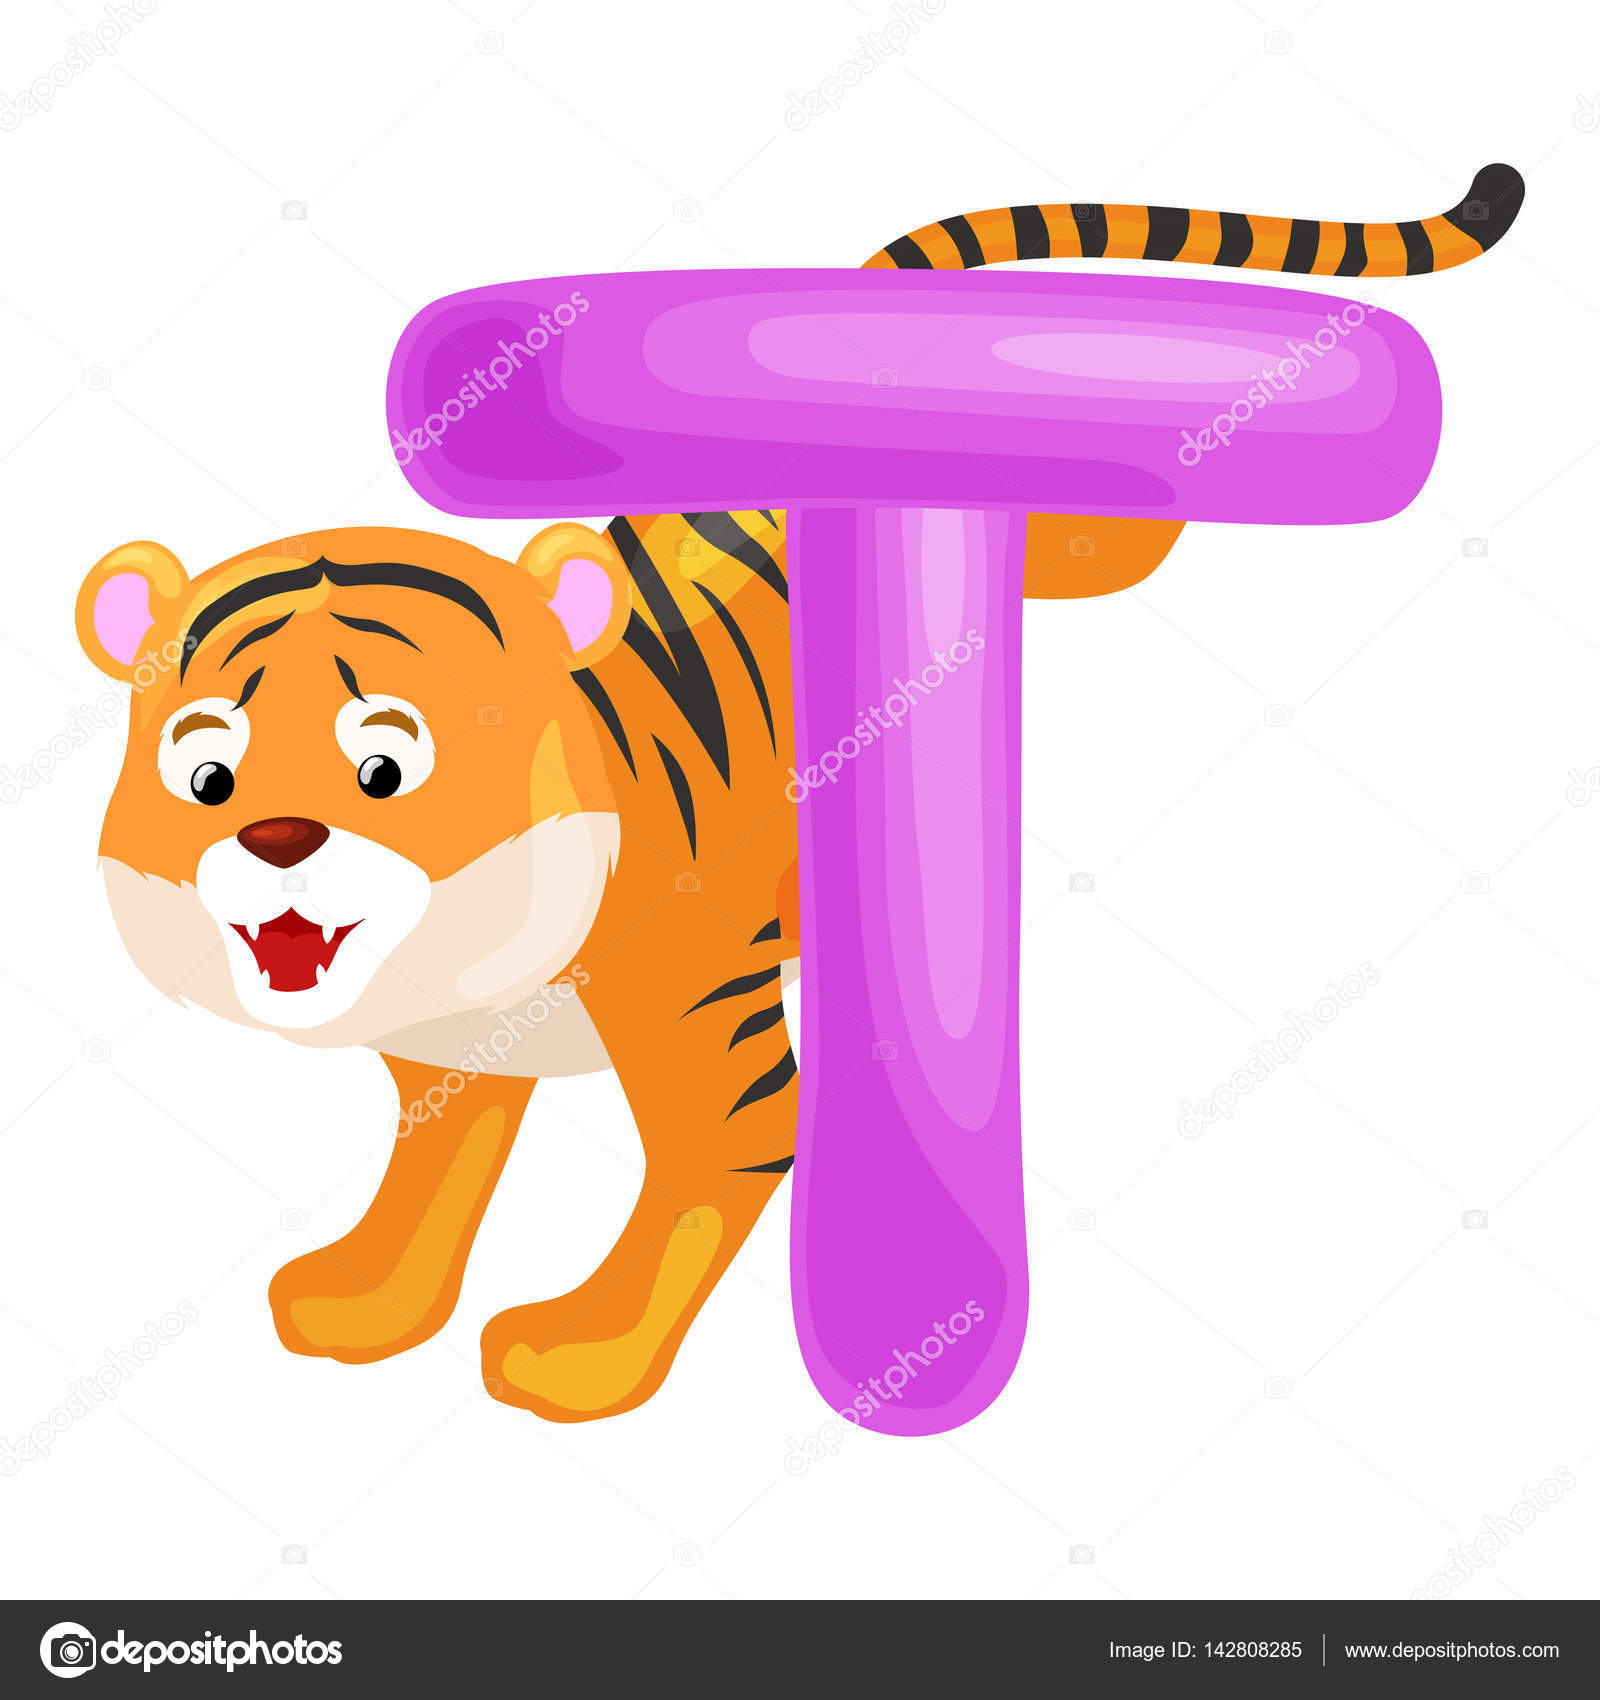 Tiger Animal And Letter T For Kids Abc Education In PreschoolCute Animals Letters English Alphabet Cartoon Learning Vector